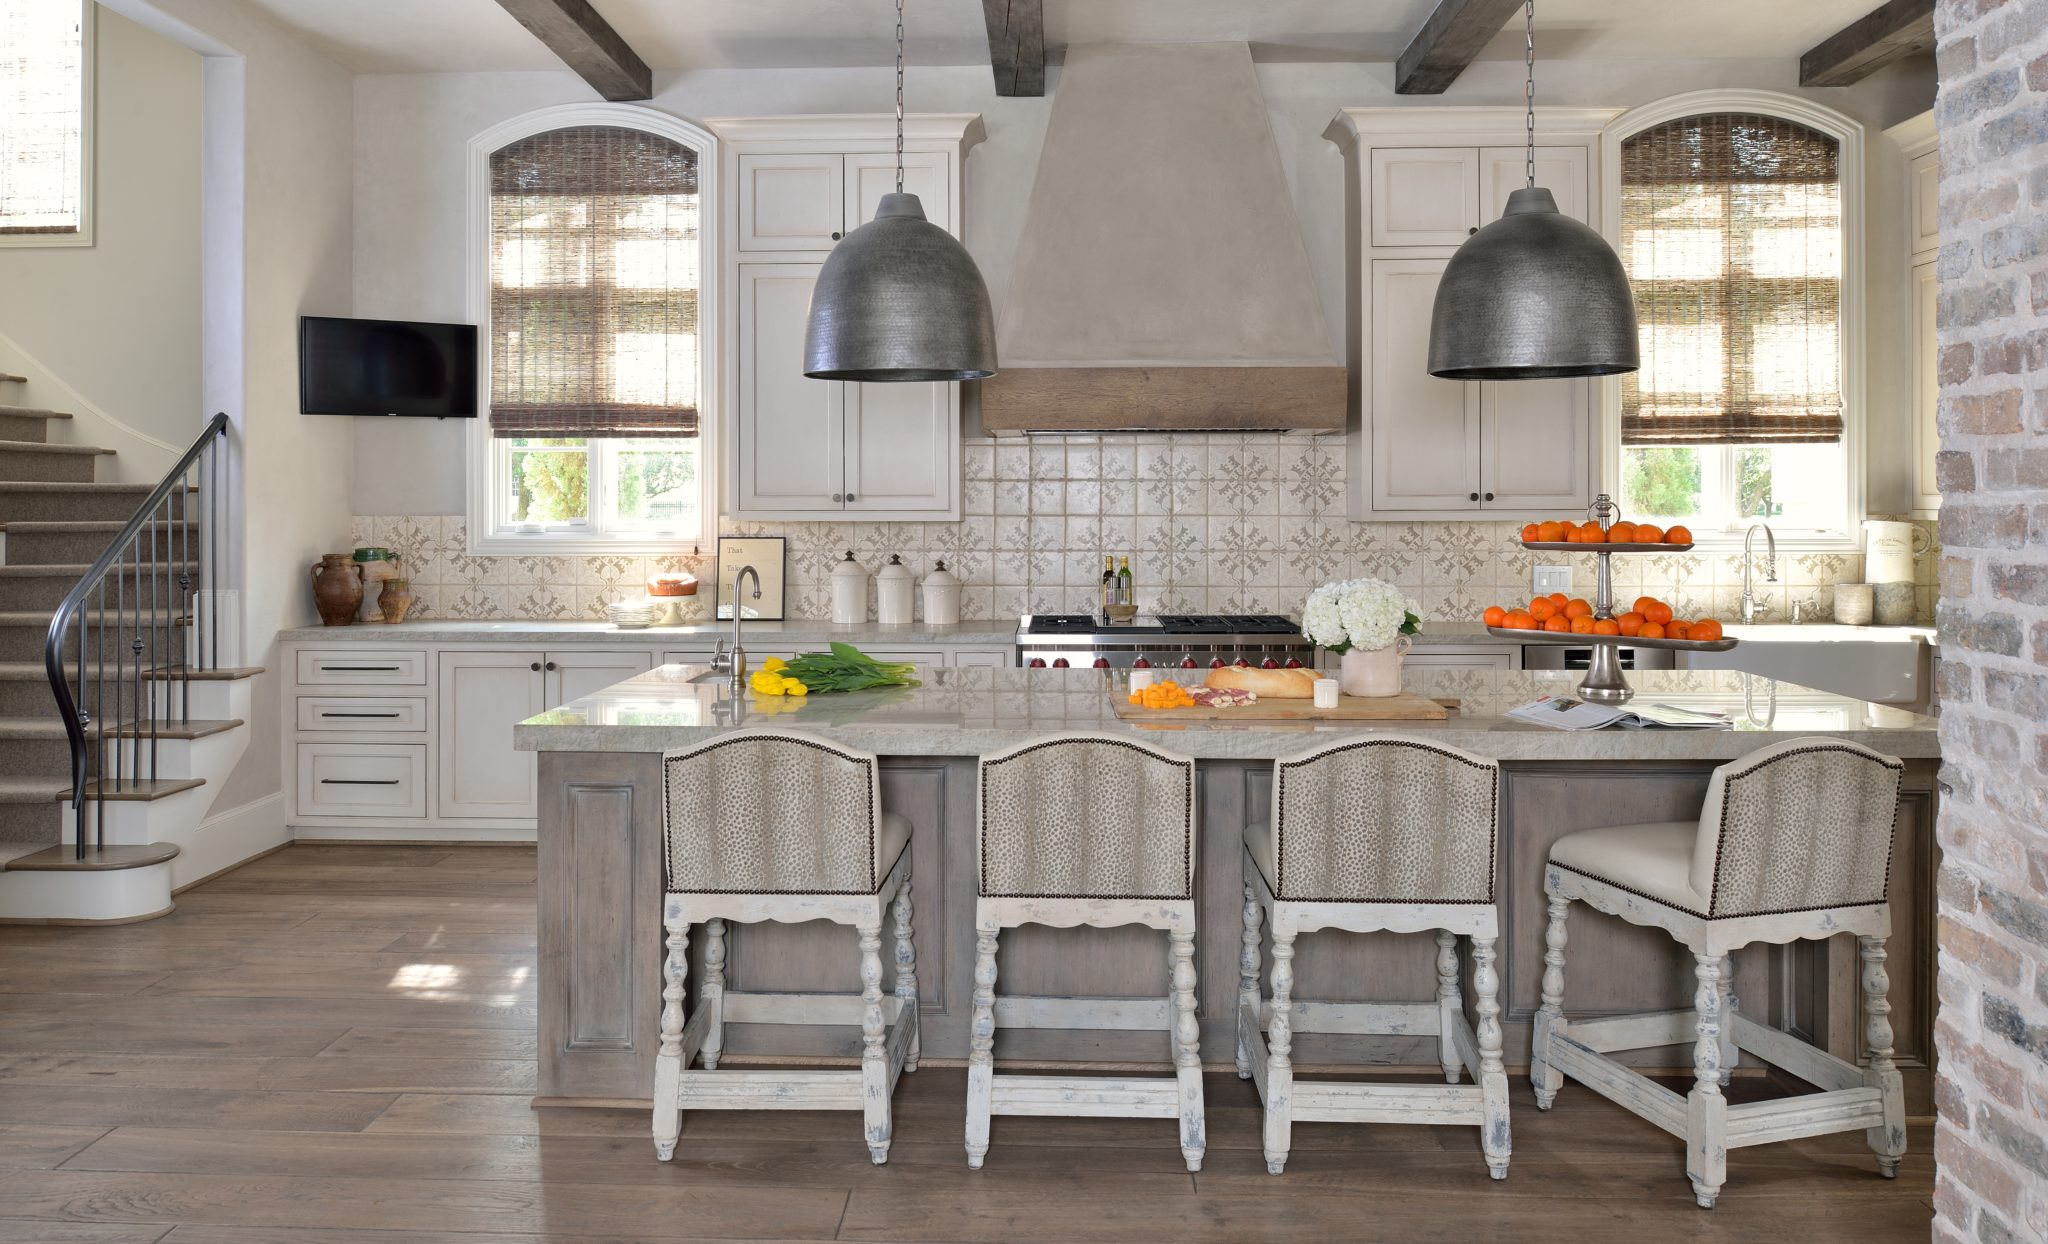 Sugar Land, TX Kitchen With Hand Painted Tile Backsplash & Plaster Hood by Cindy Witmer Designs